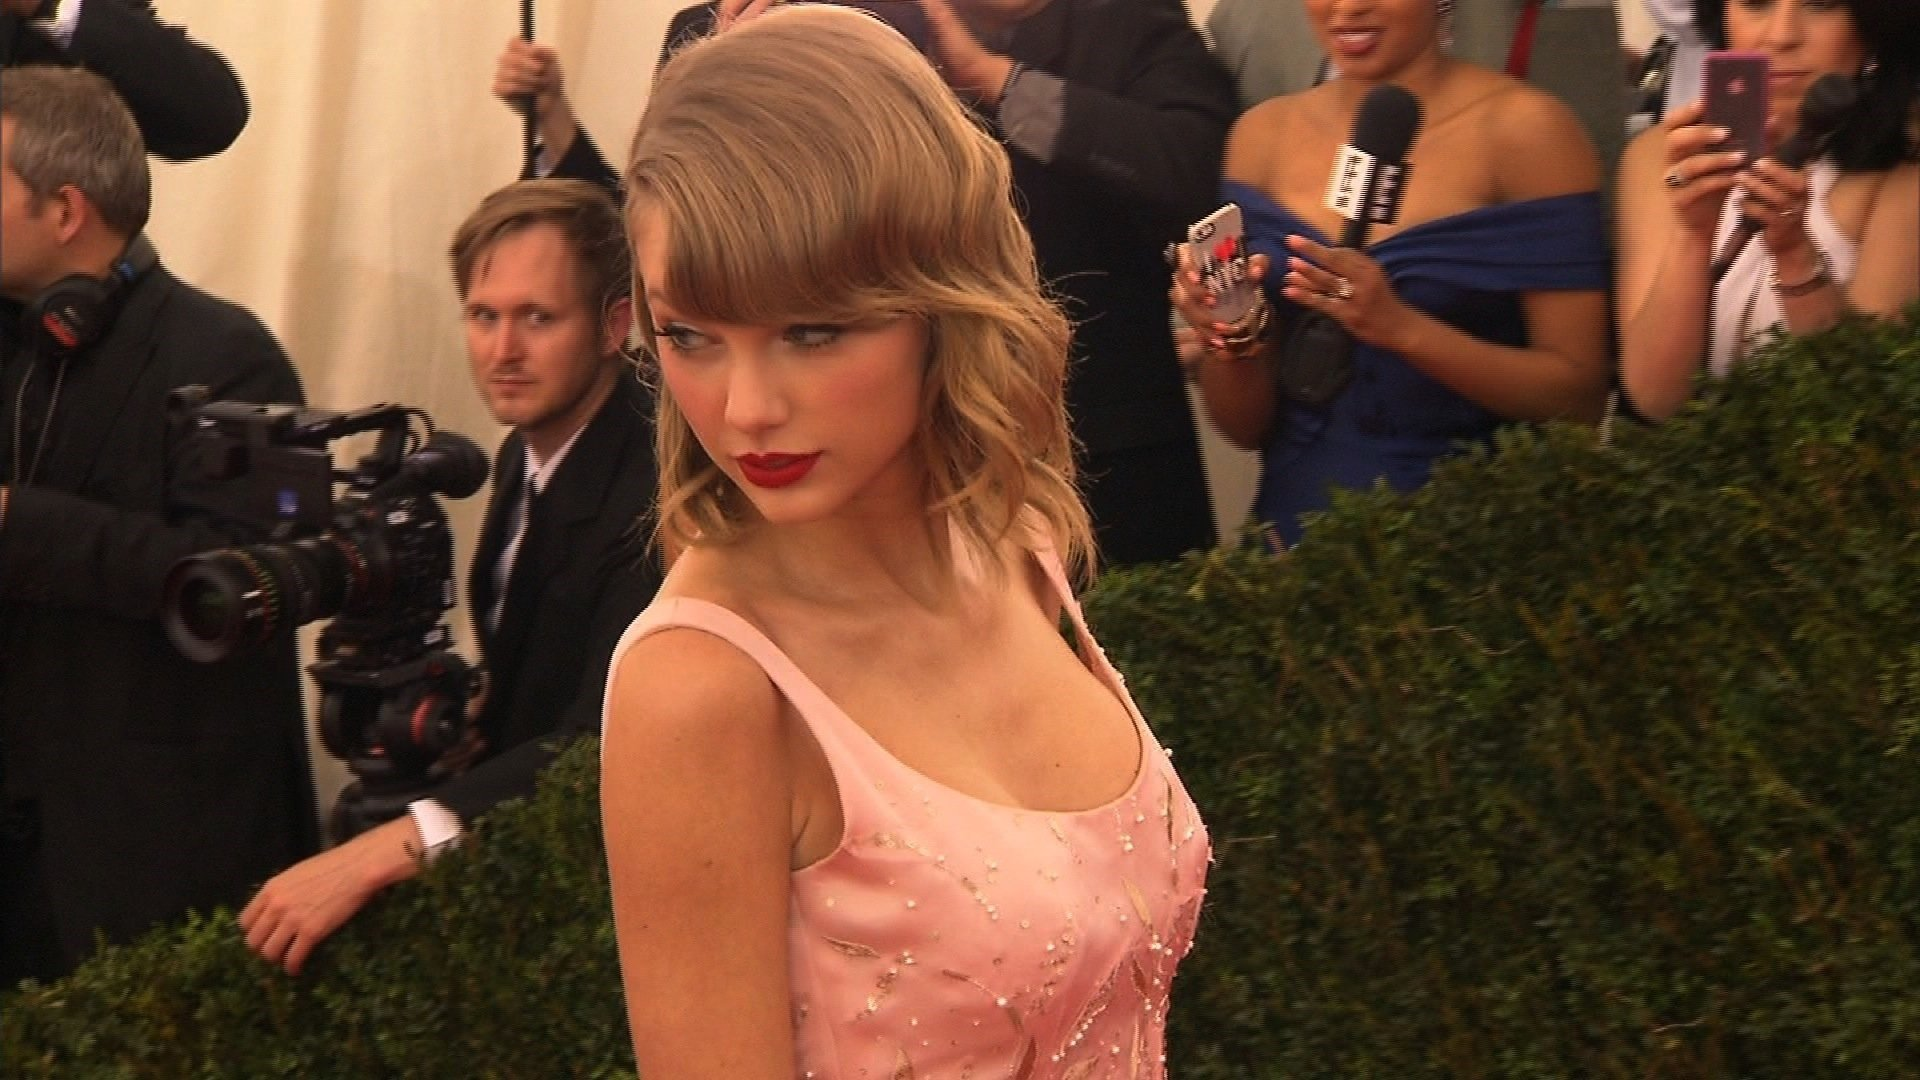 Taylor Swift cuts deal with AT&T for Super Bowl weekend show